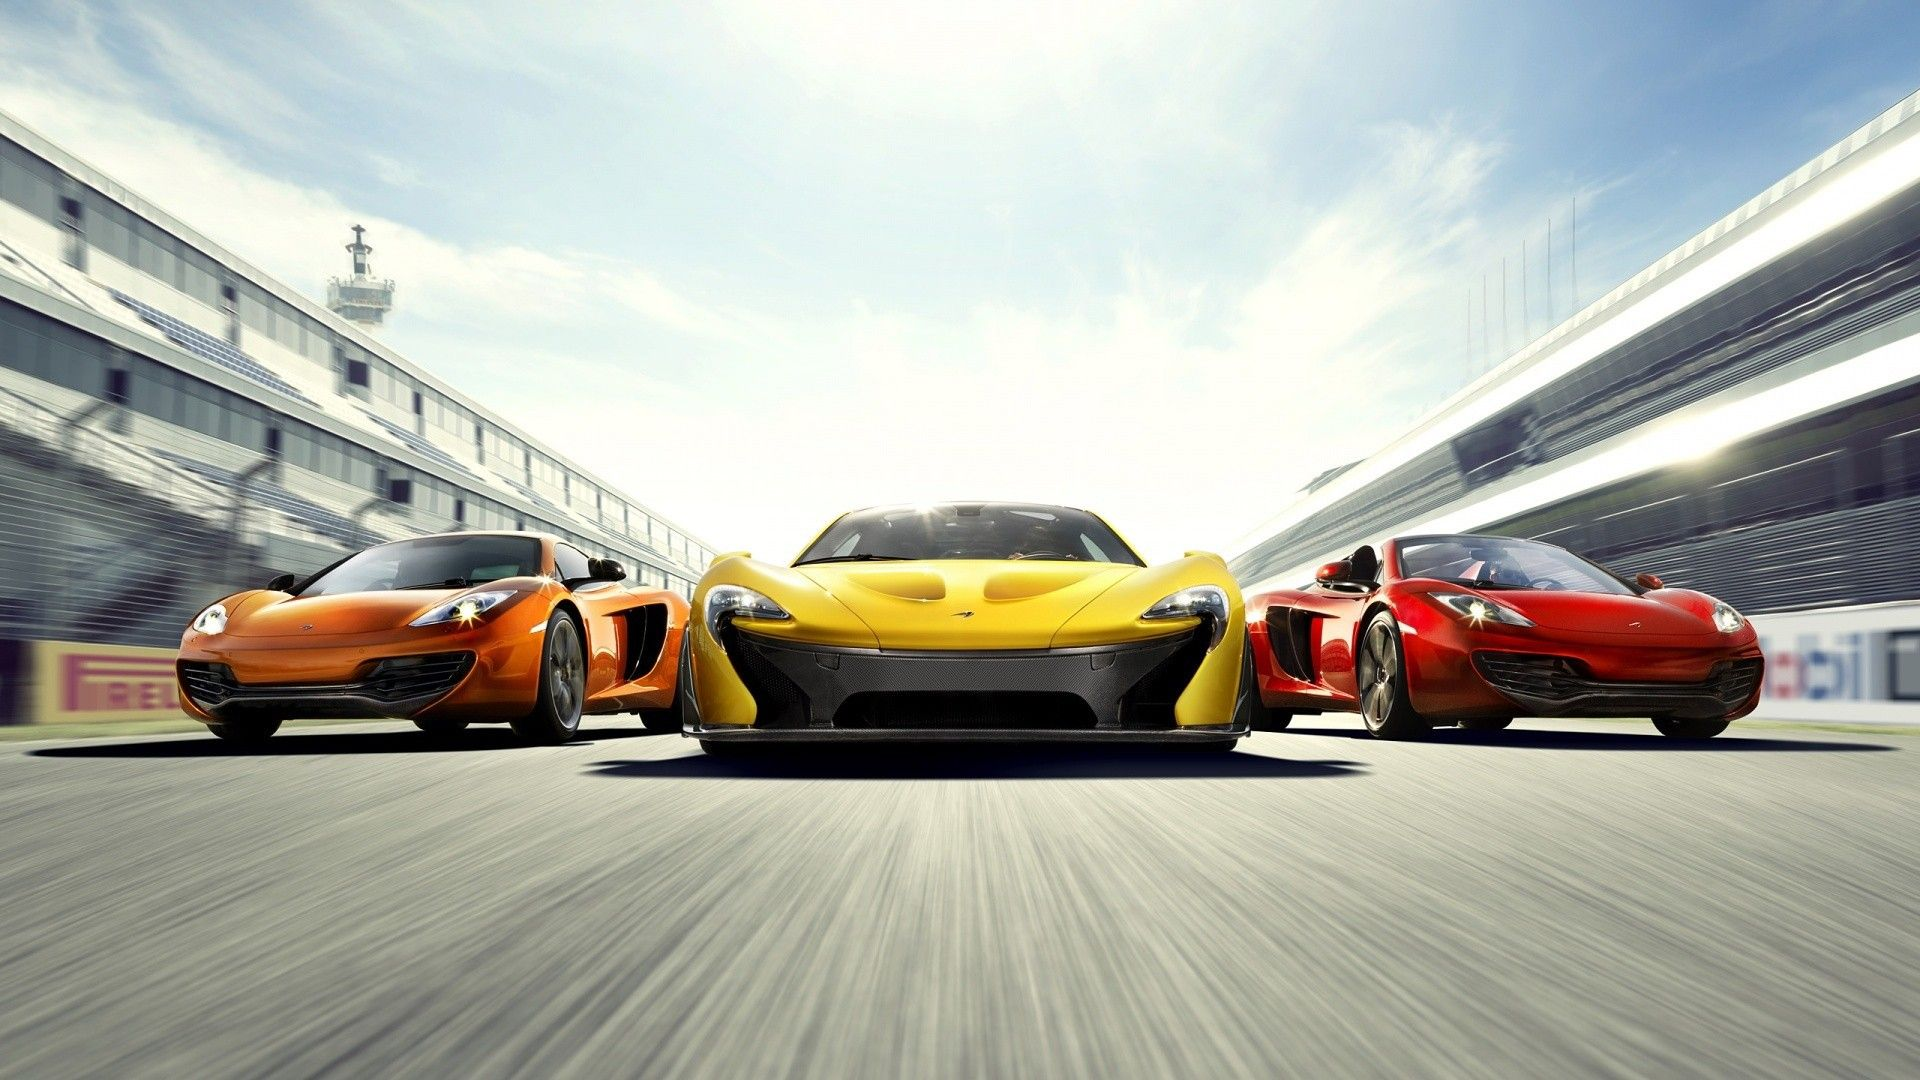 Cars At High Speed Wallpapers And Images Wallpapers Pictures